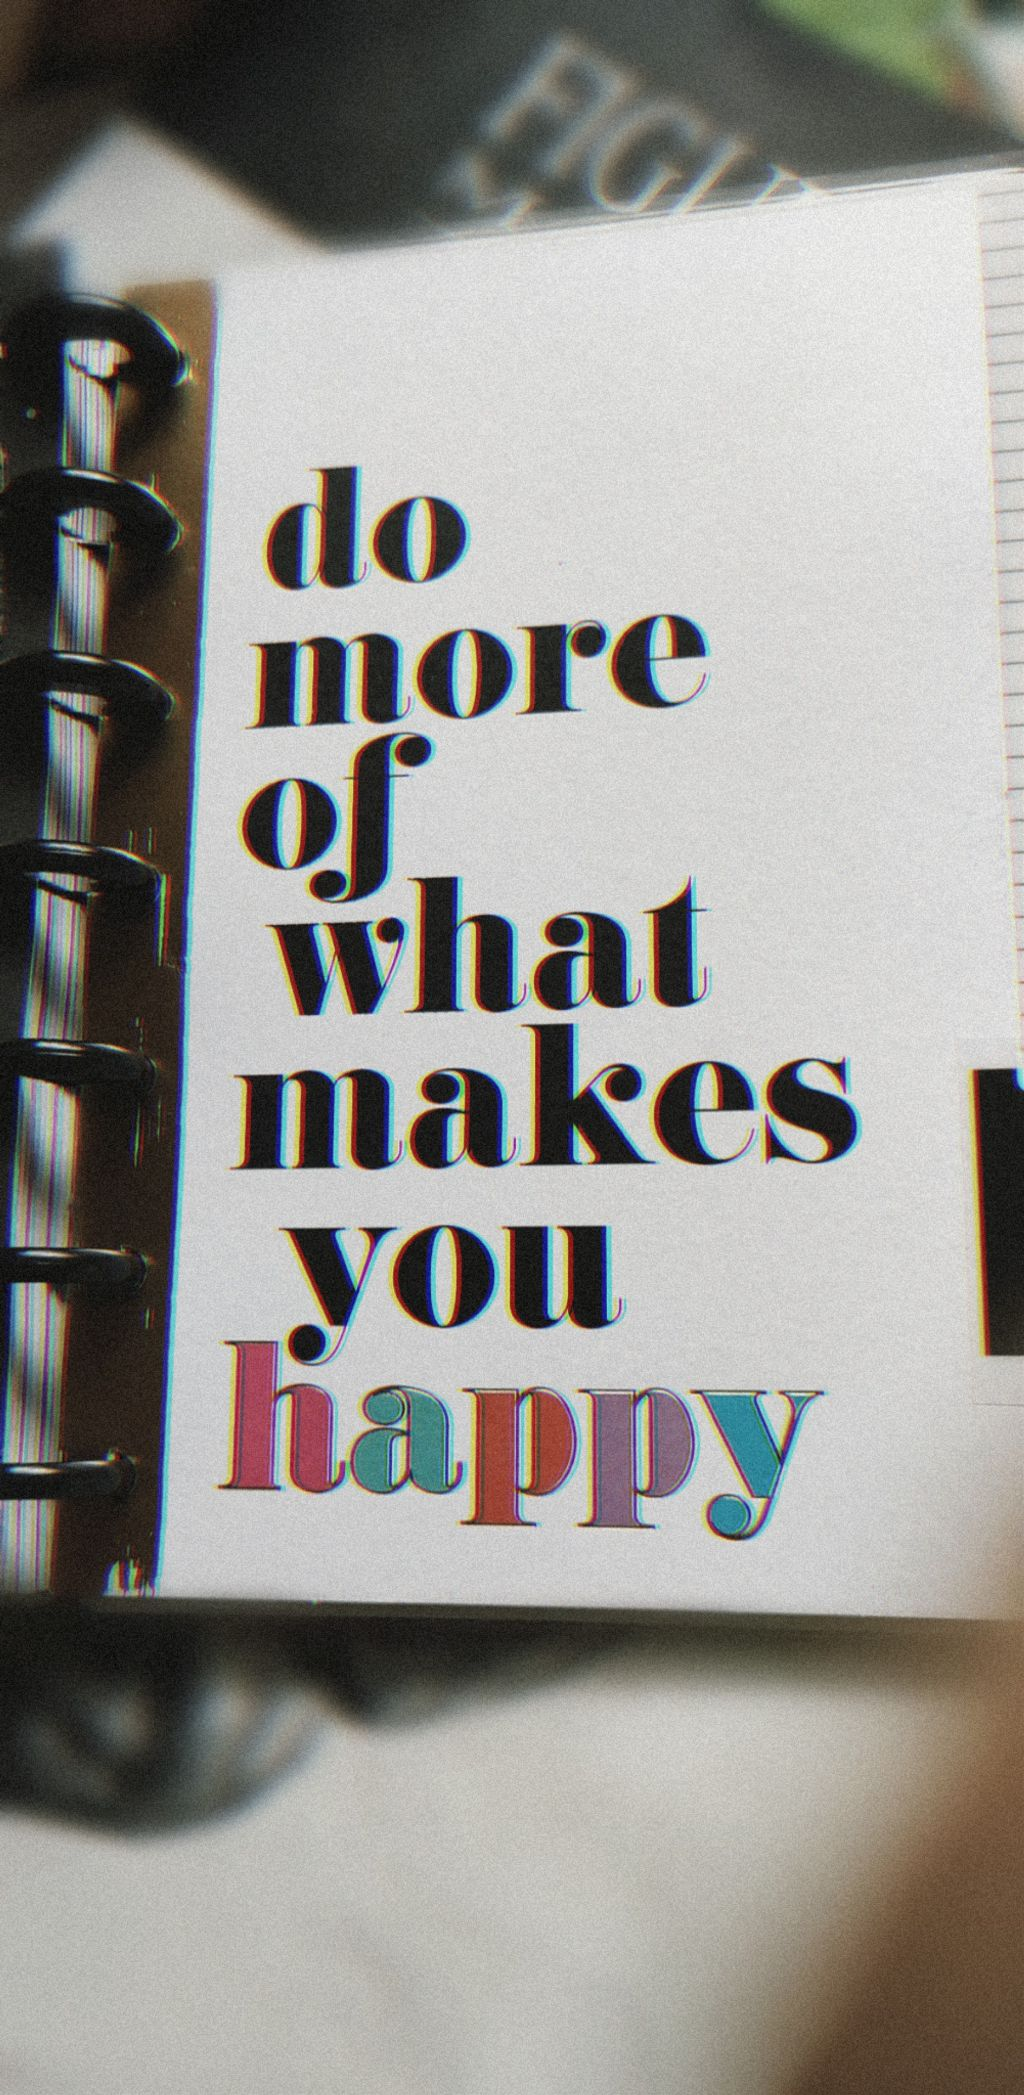 💕✨💕  But there is a difference in doing and being too.... make sure that you be internally happy... Don't always find external sources or things to make you happy 💕✨✨   #thought#rant#cover#diary#glitch#aesthetic #amazing #mornings #quoteoftheday #inspire #motivation